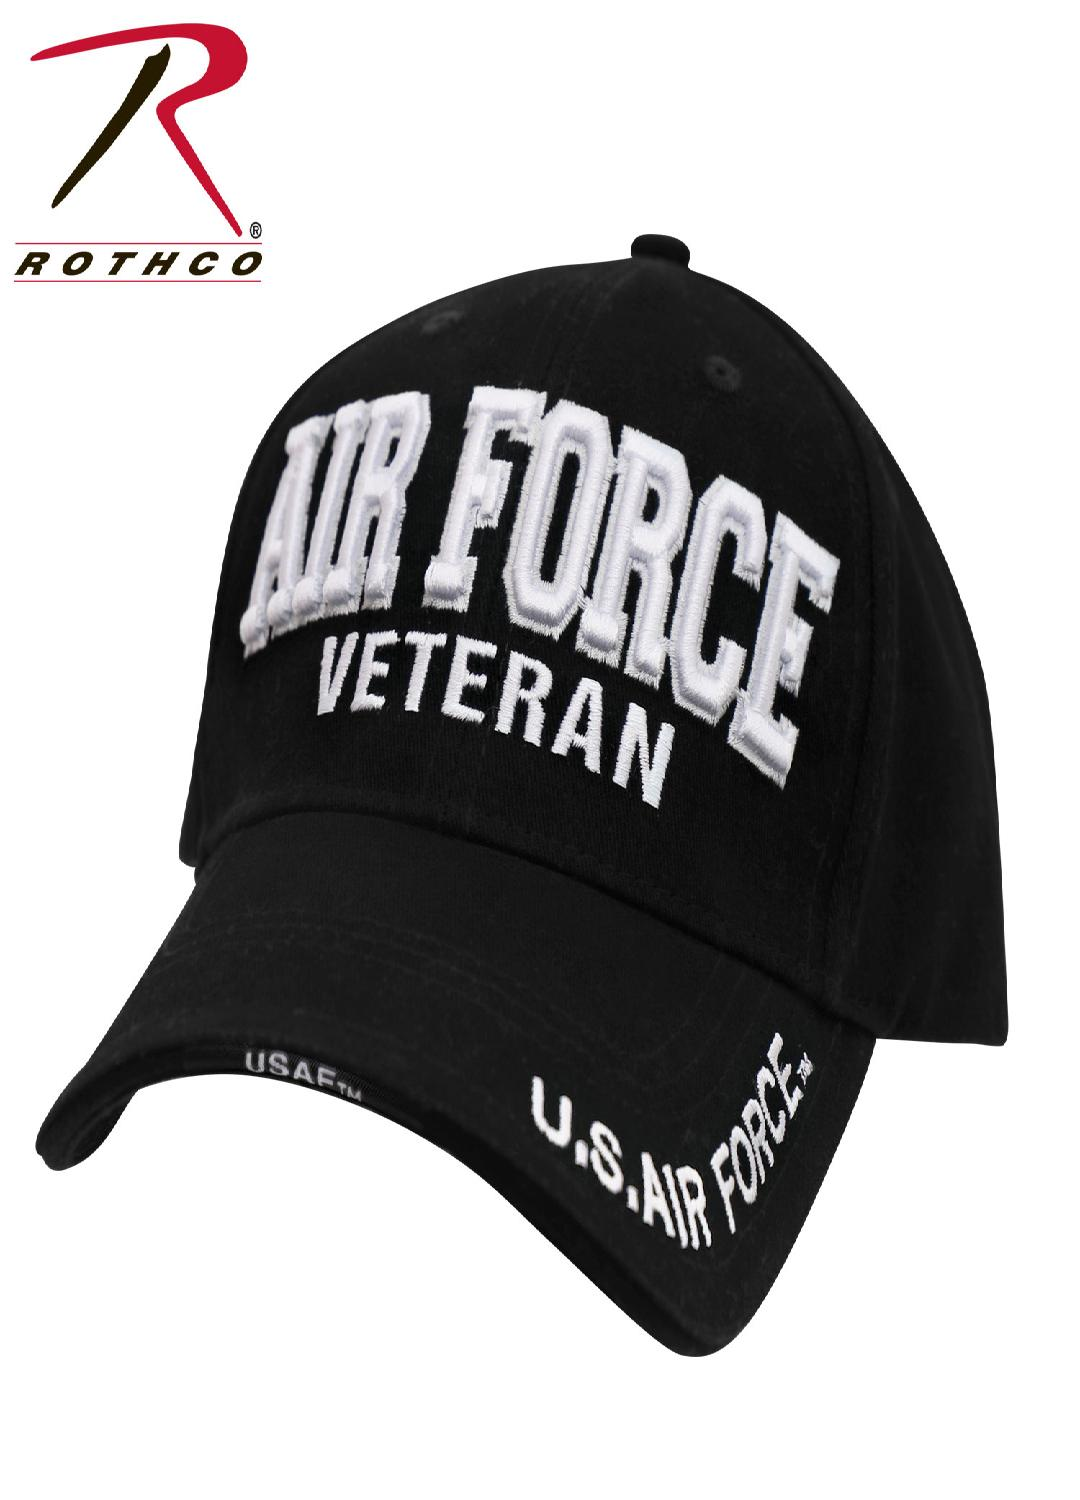 Rothco Deluxe Low Profile Military Branch Veteran Cap - Black / One Size